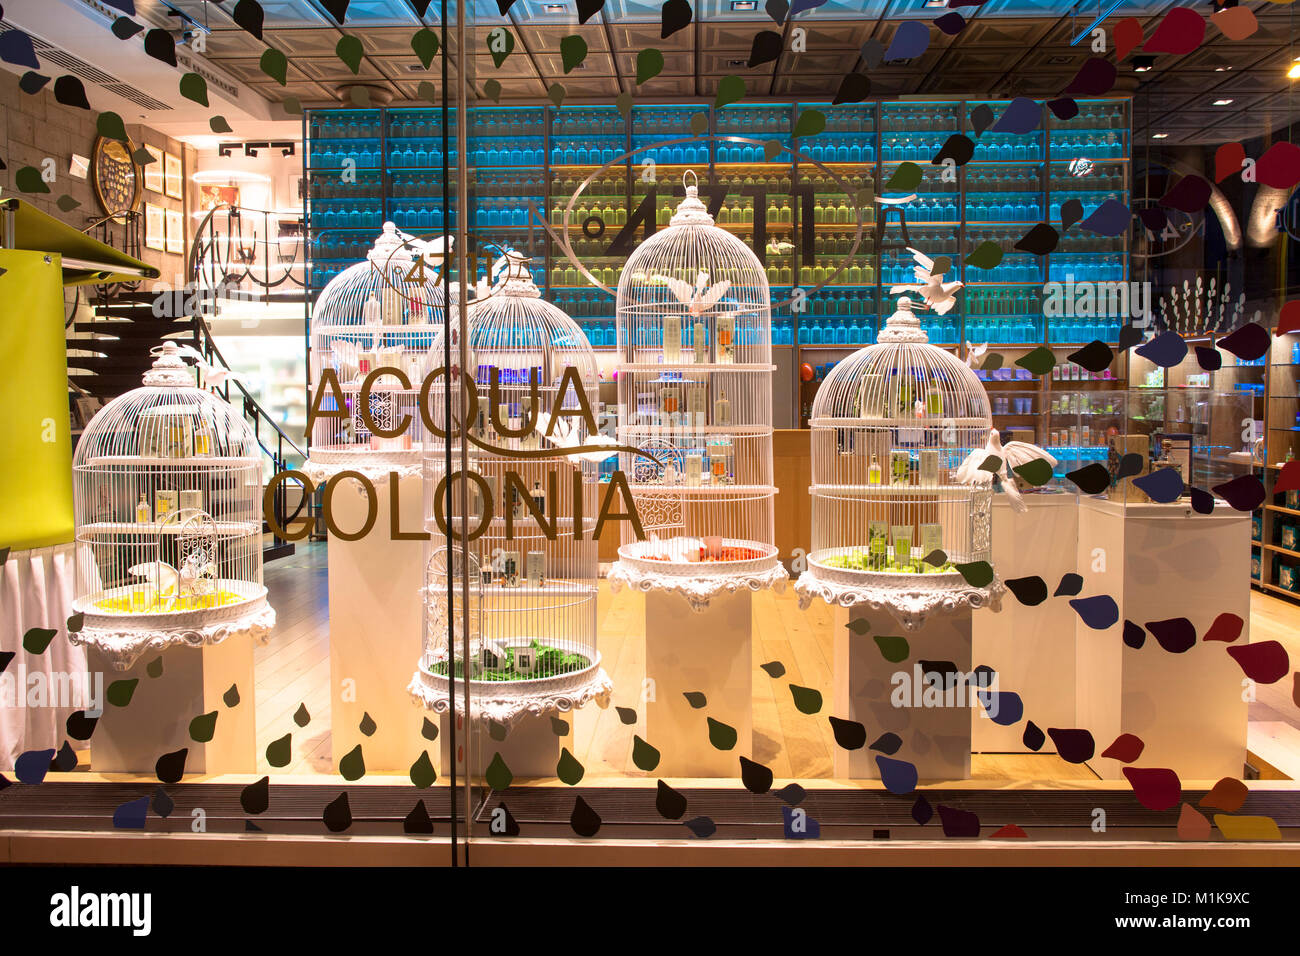 Germany, Cologne, the 4711 house at the Glockengasse, ancestral home of the perfume factory Muelhens, shop window - Stock Image